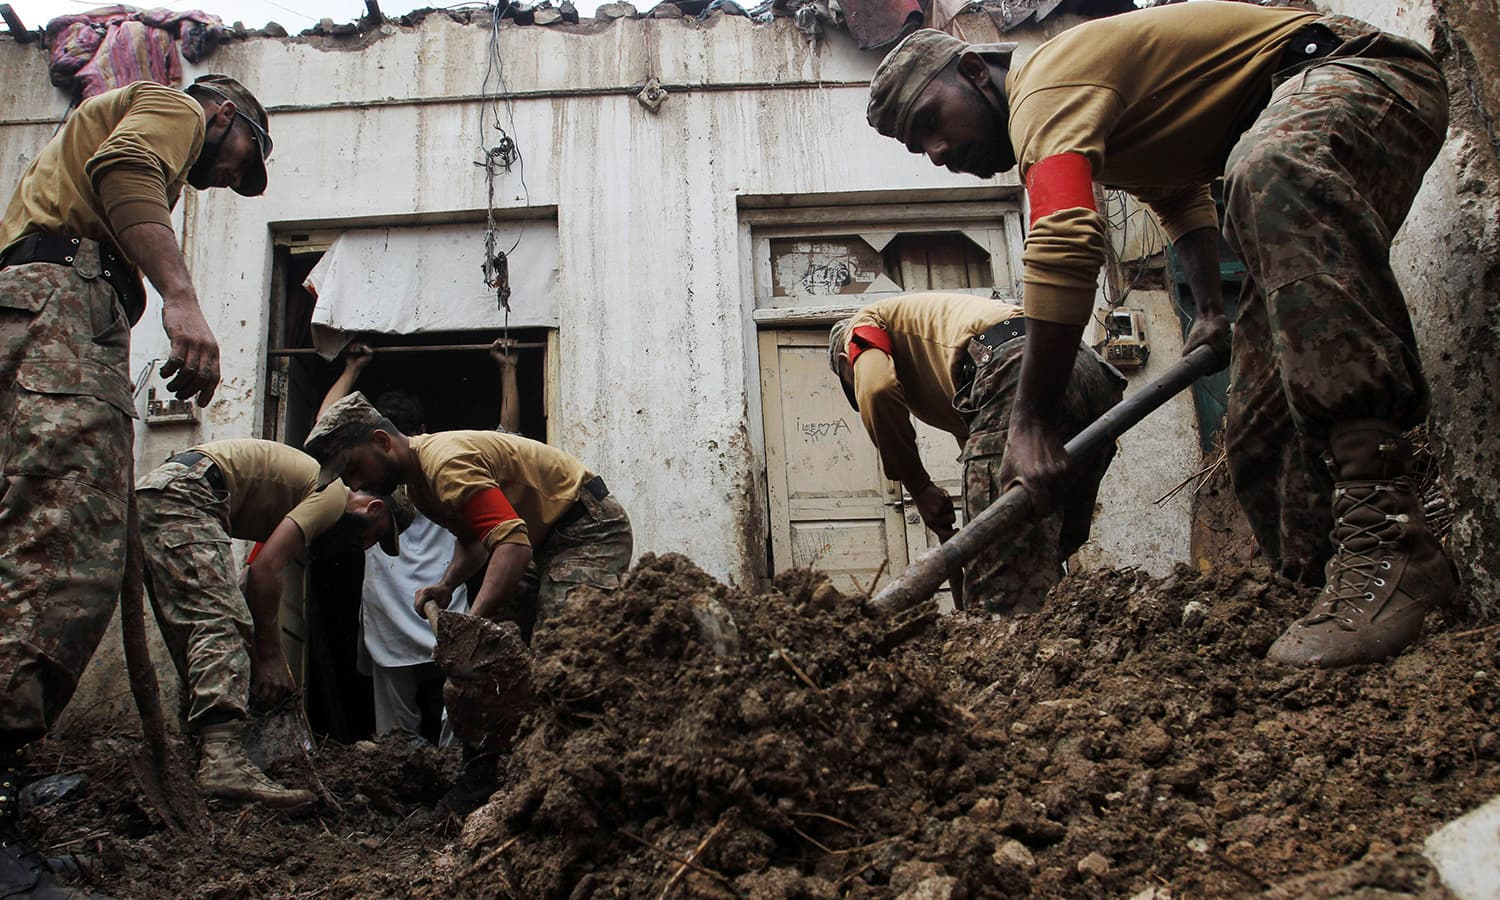 Soldiers remove mud from a home after it was damaged in heavy rain and winds in Peshawar on April 27, 2015. — AFP